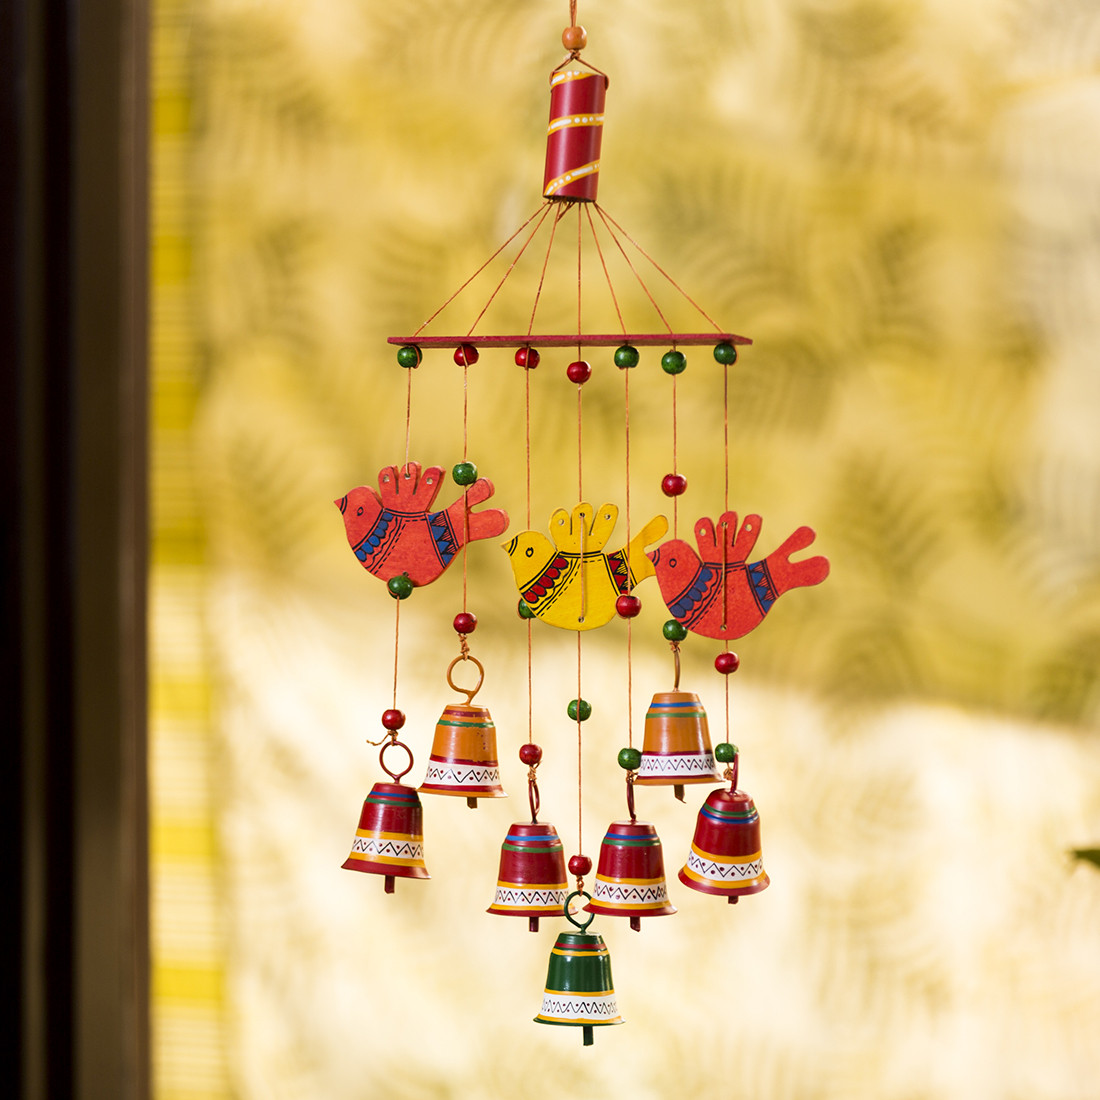 Moorni Clinkering Songbirds Hand-Painted Decorative Hanging Bells Wind Chime In Metal & Wood